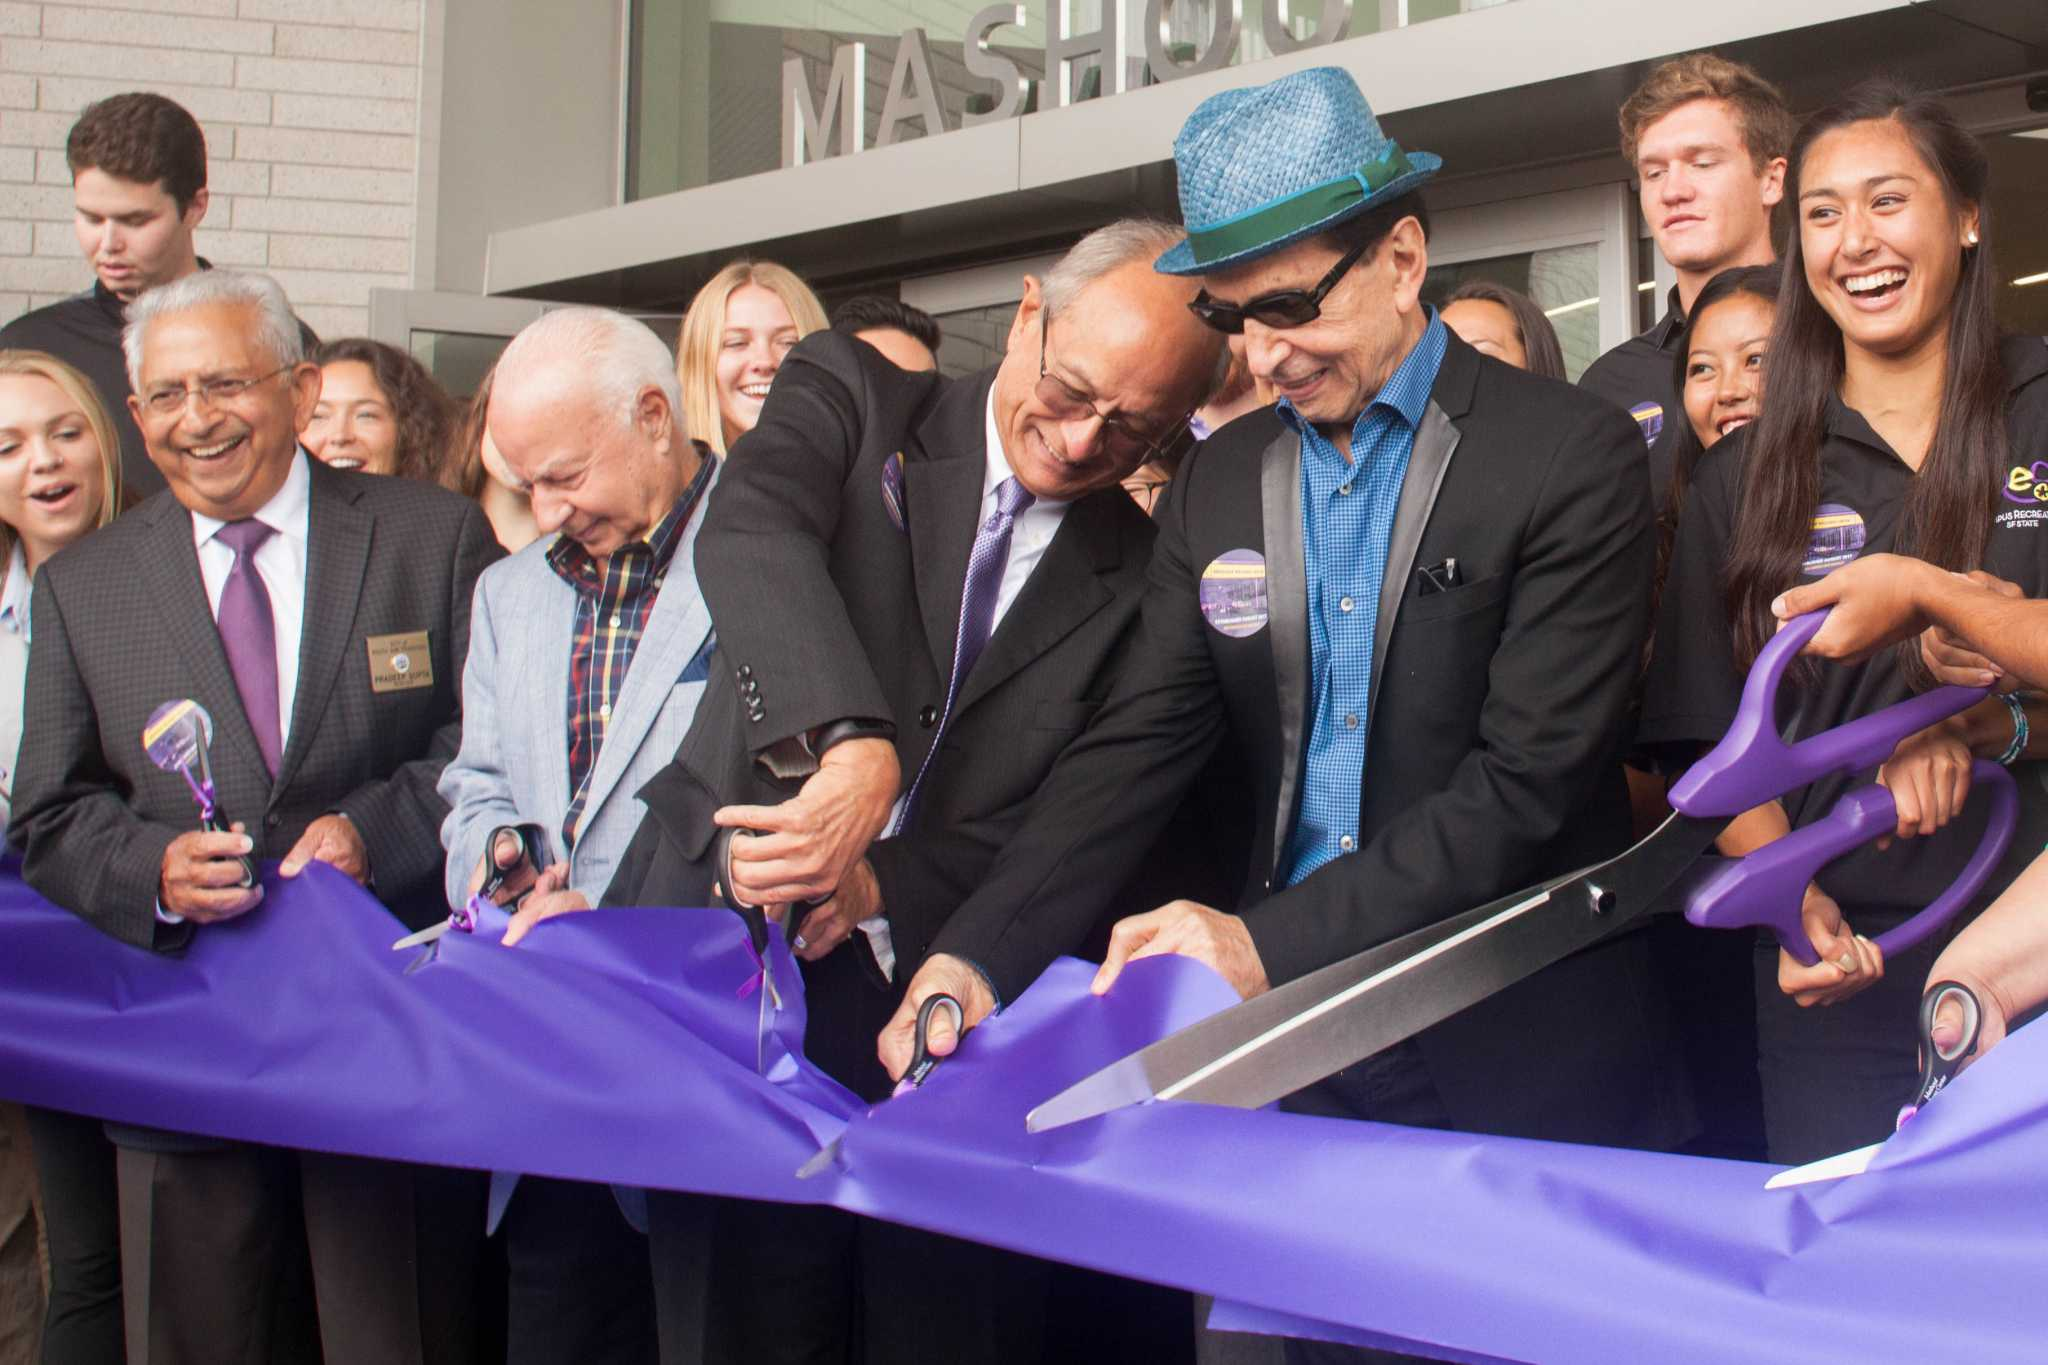 SF State President, Leslie E. Wong and Manny Mashouf cut a ribbon during the Mashouf Wellness Center Grand Opening on Tuesday, August 29, 2017. (Mitchell Mylius/Golden Gate Xpress)